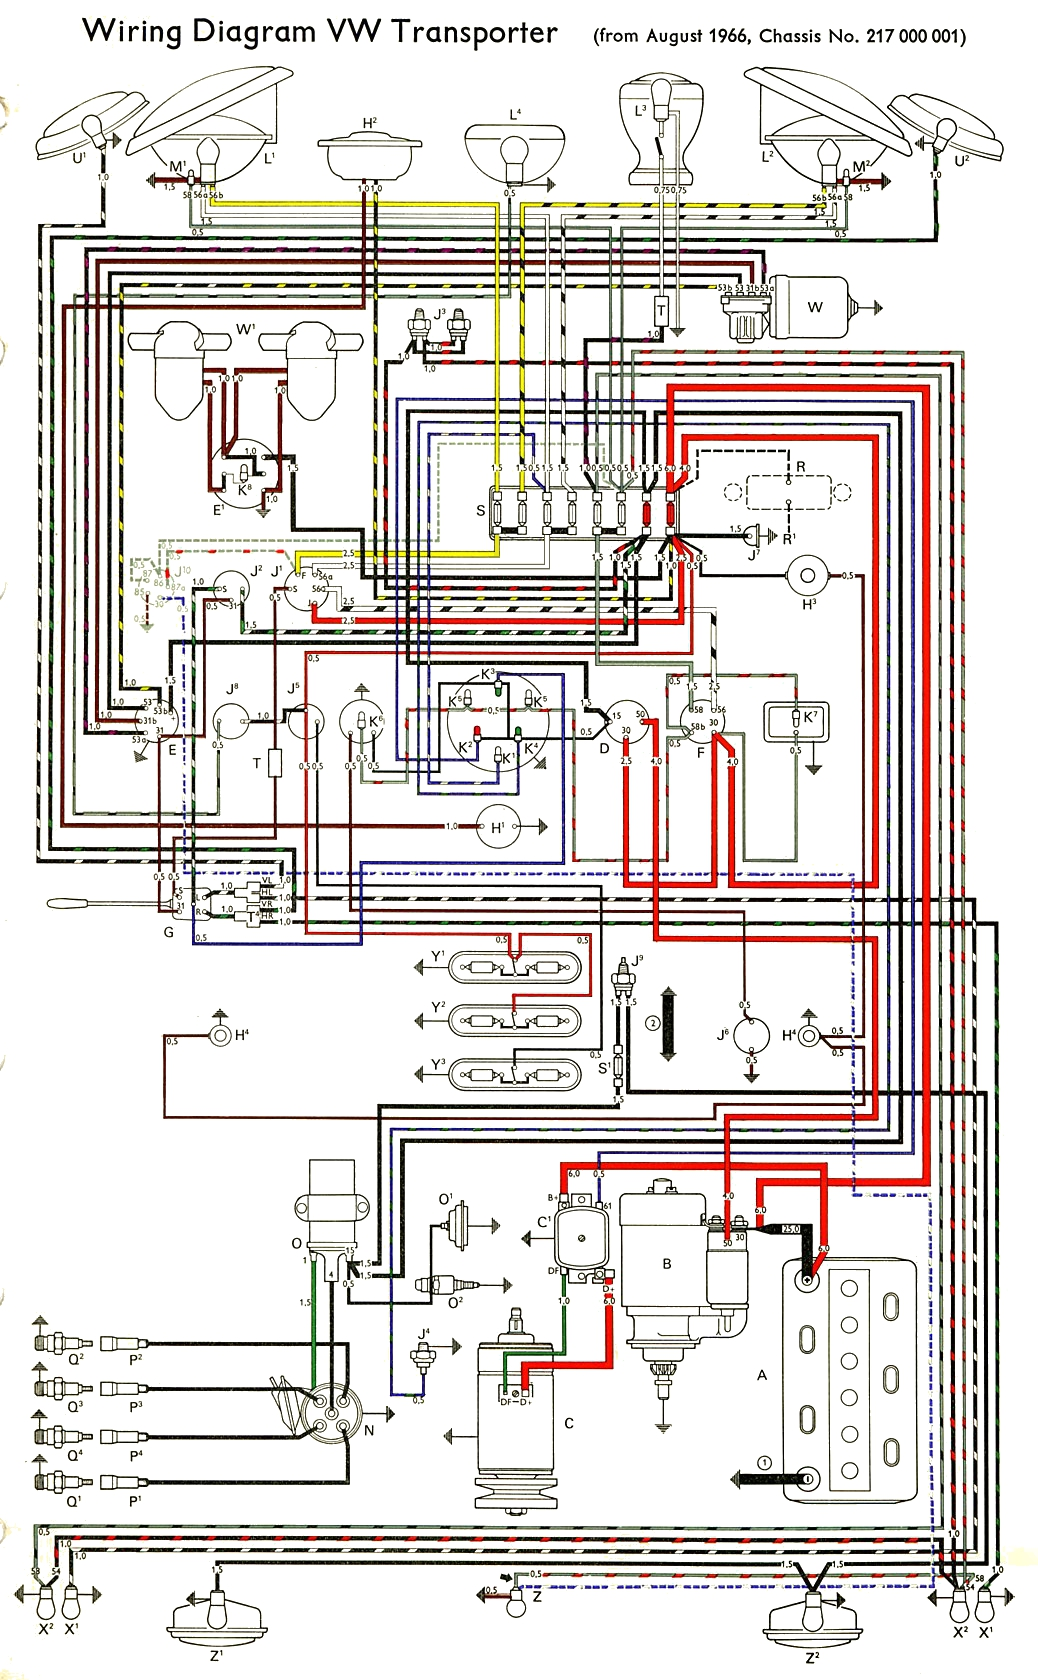 bus_67 thesamba com type 2 wiring diagrams 1973 vw wiring diagram at reclaimingppi.co